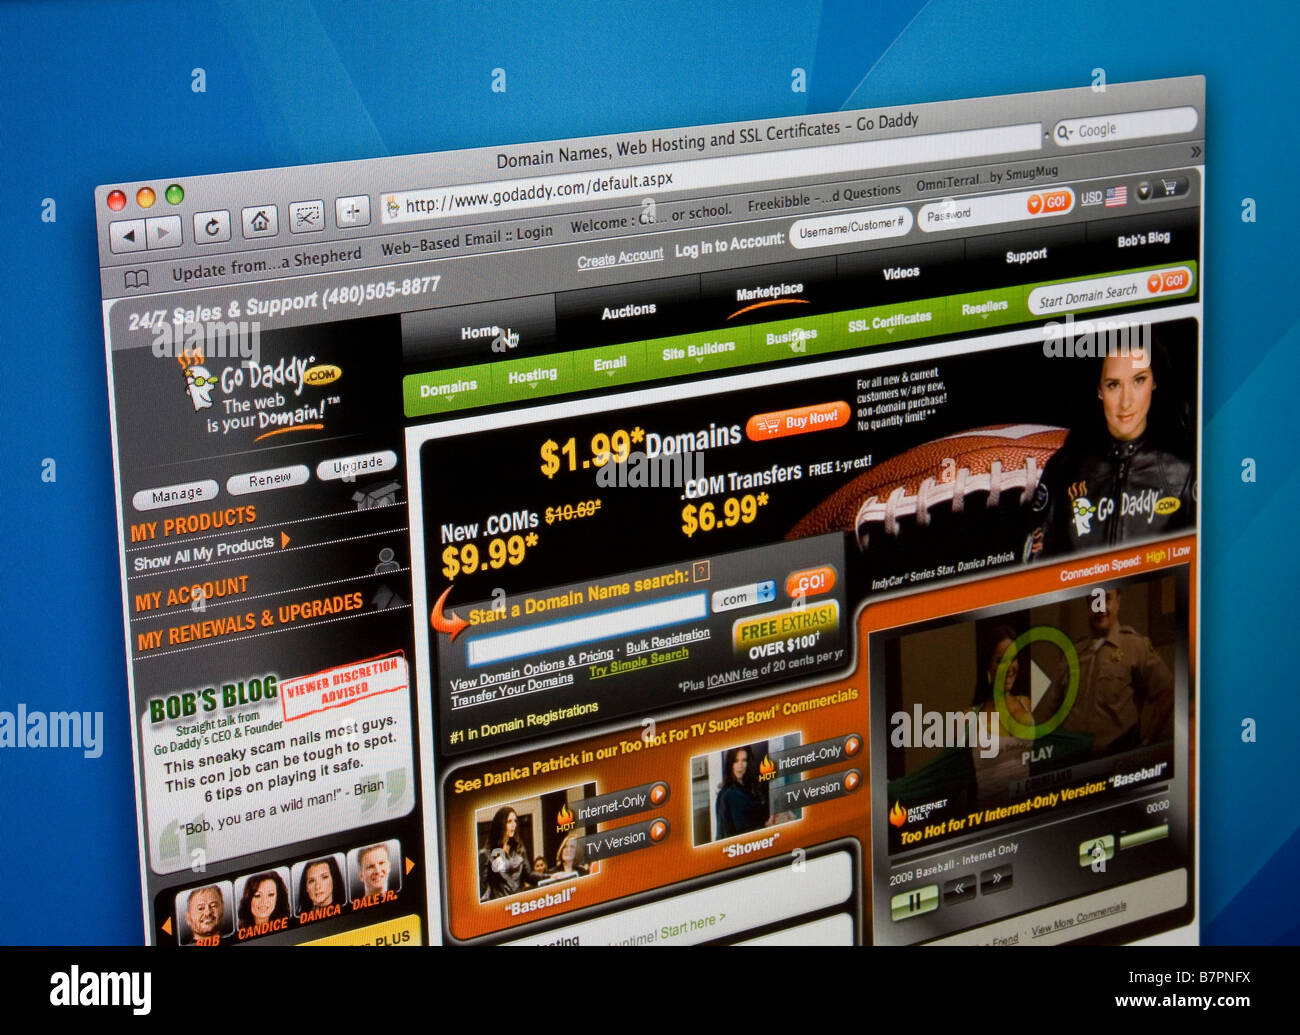 Godaddy website homepage displayed on computer screen. - Stock Image